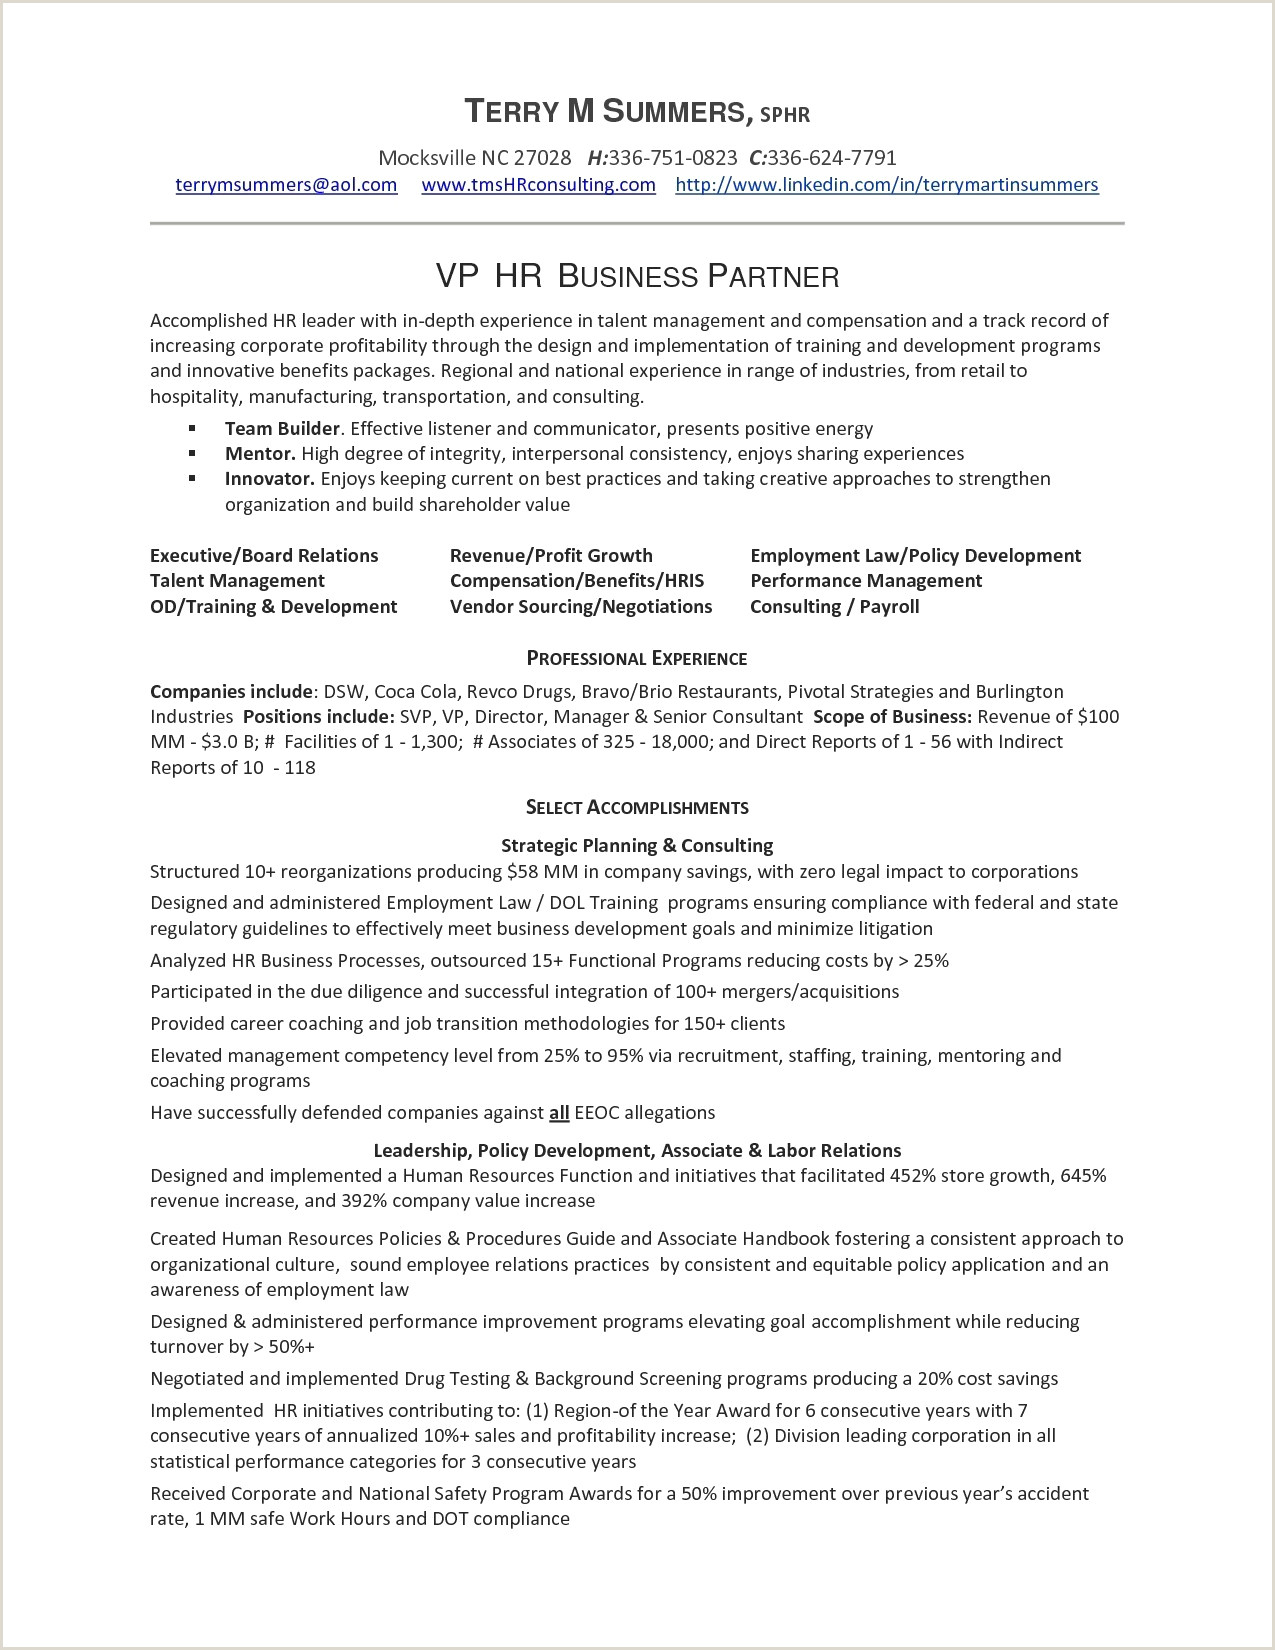 Resume format for Bank Job Pdf Download Mergers and Inquisitions Resume Template Acquisitions